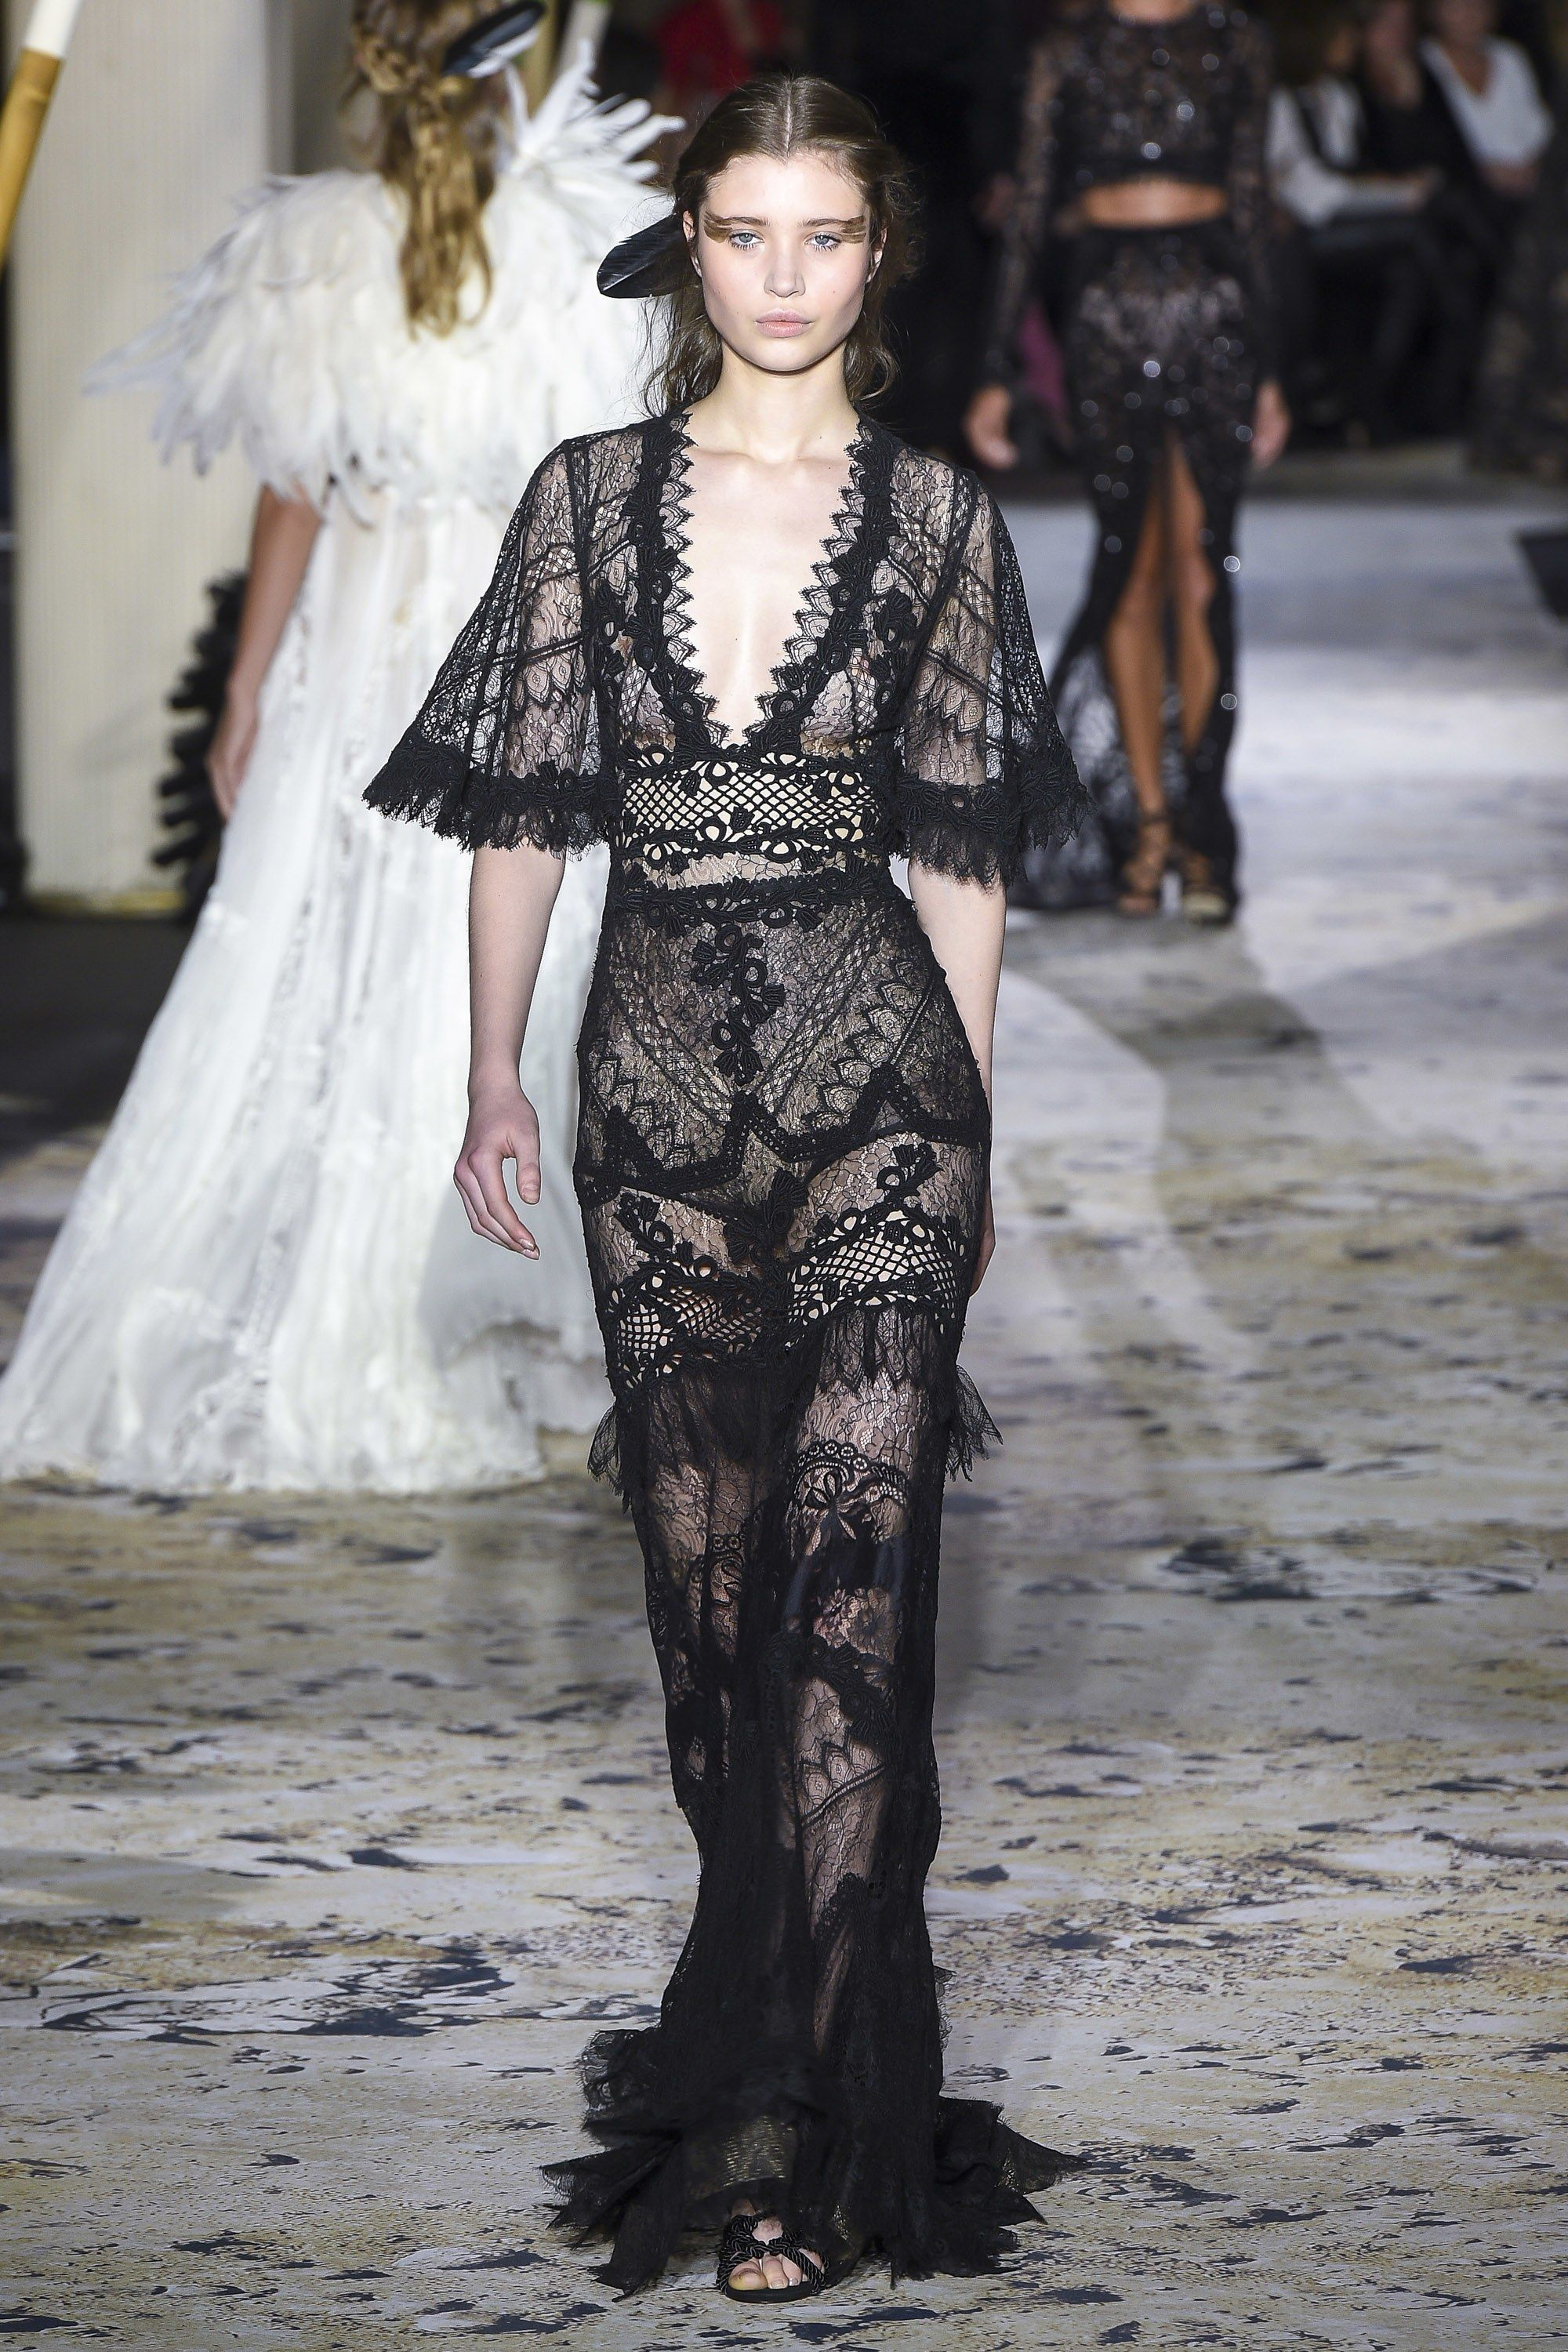 The complete zuhair murad spring couture fashion show now on